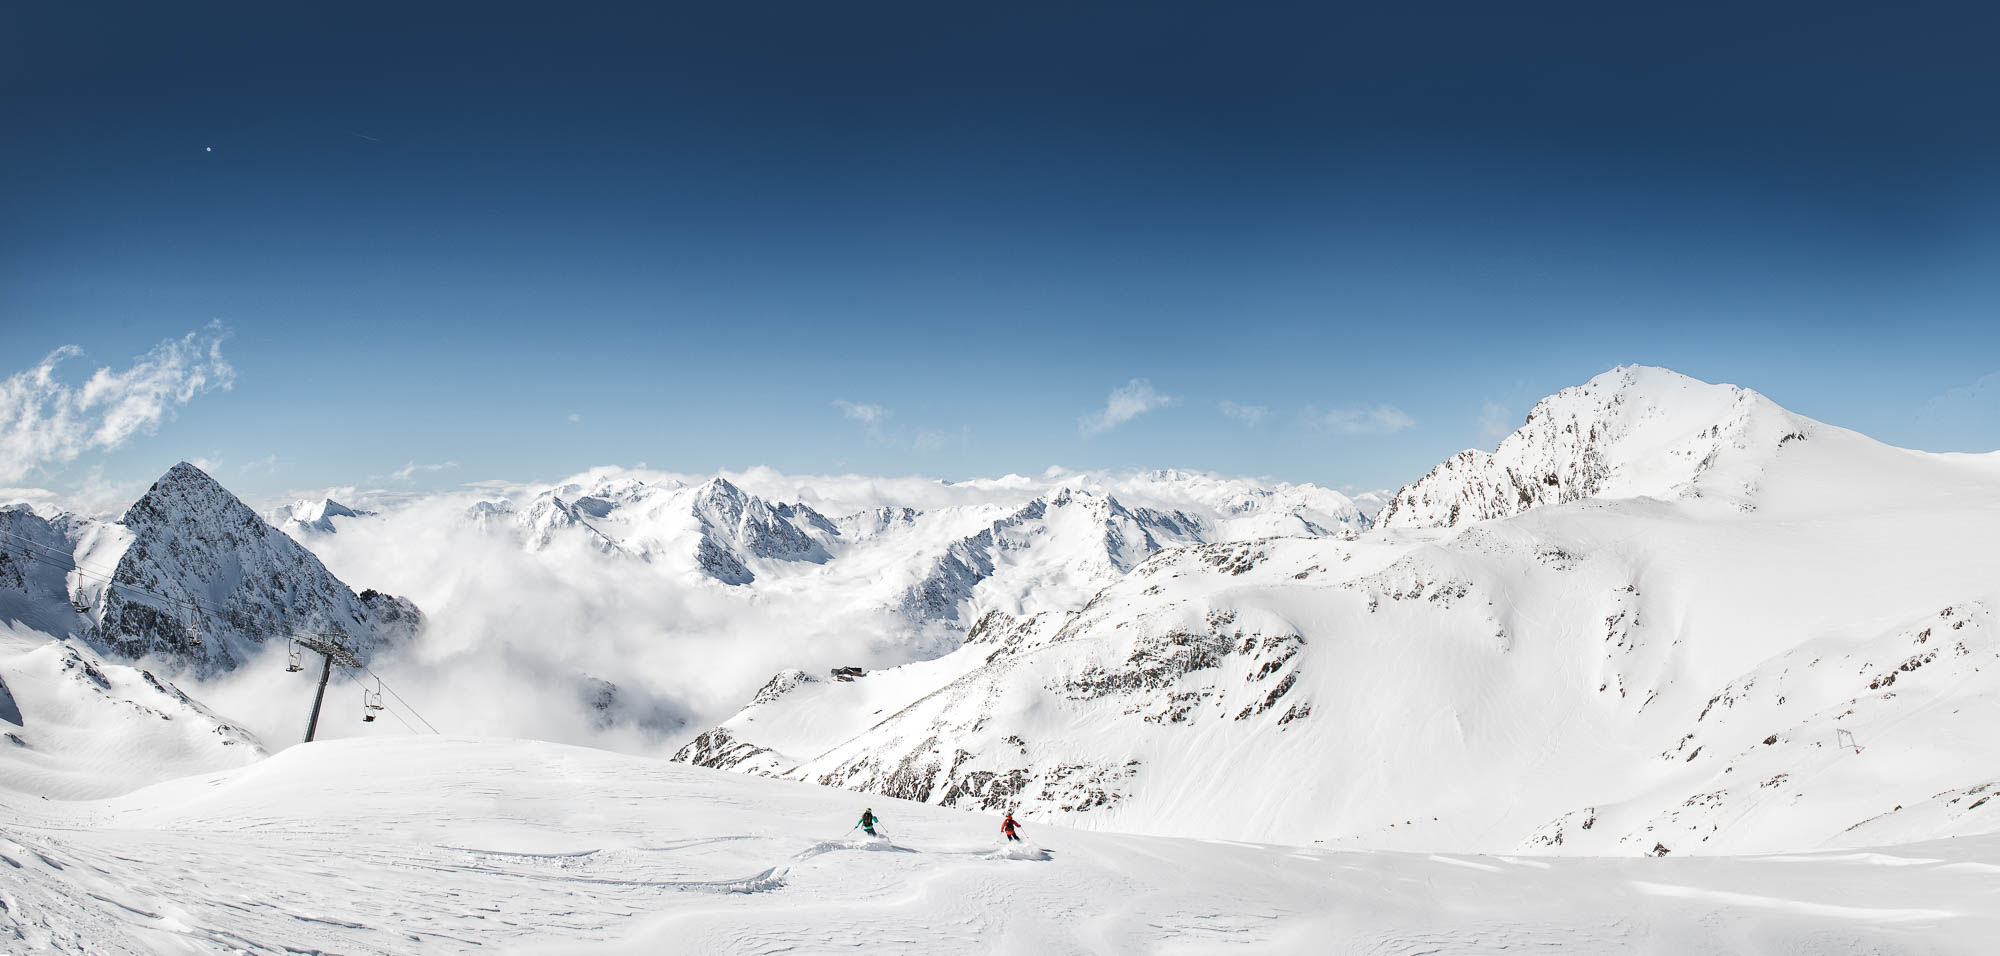 stubaier-gletscher_andre-schanherr_powder-department_web-21